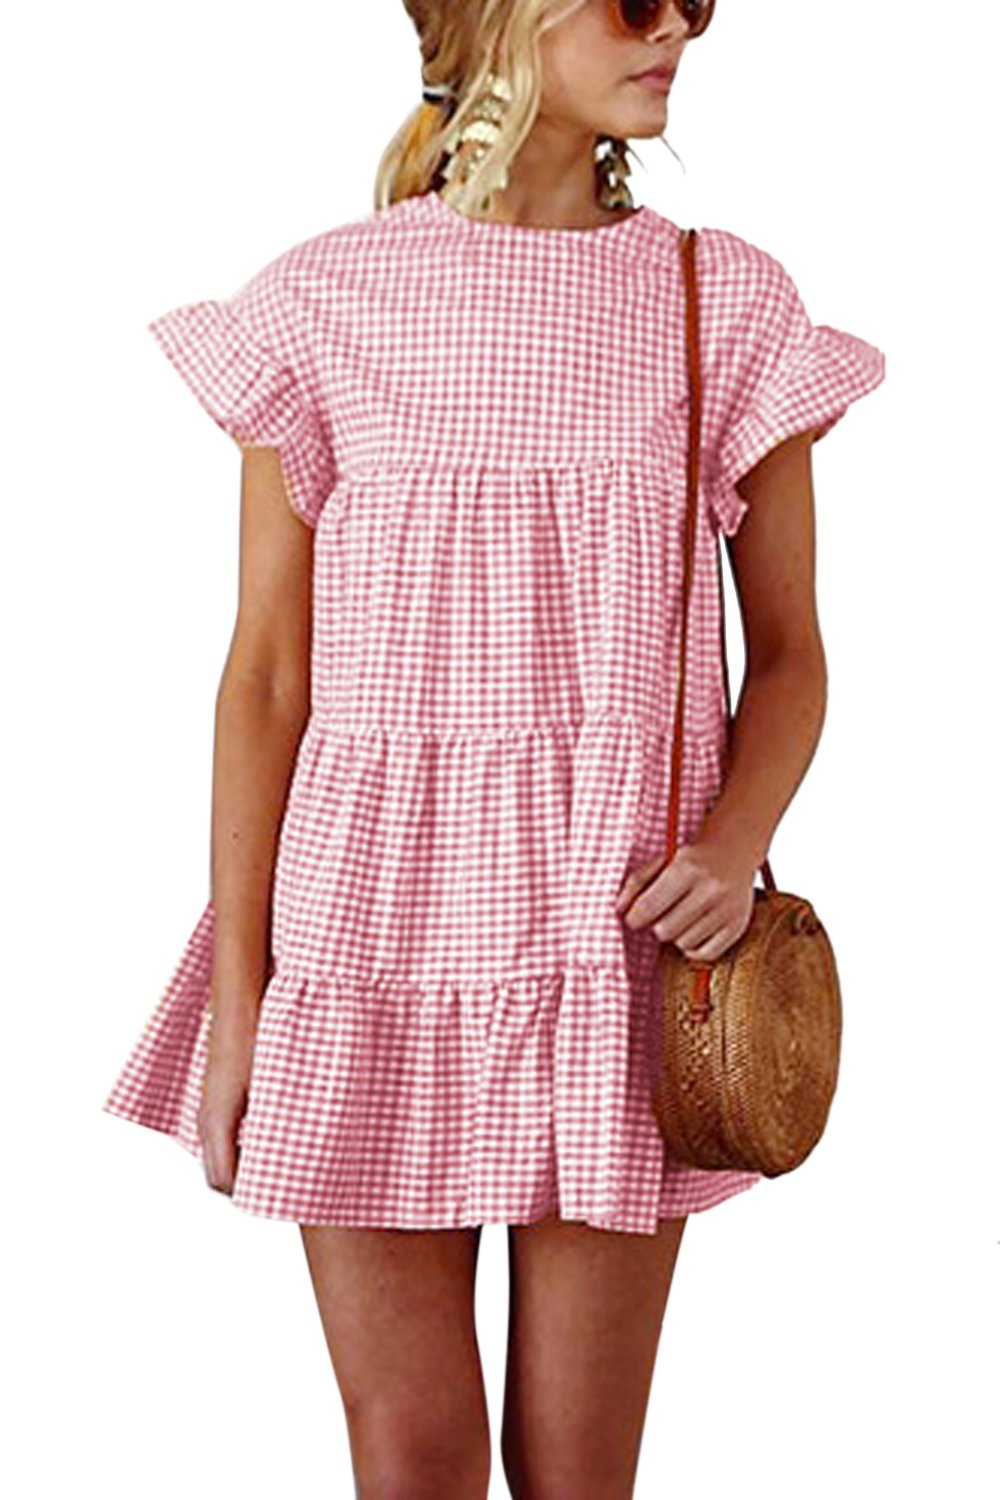 Available at Amazon: Women Summer Casual Dress Bell Sleeve Plaid Mini Party Dresses